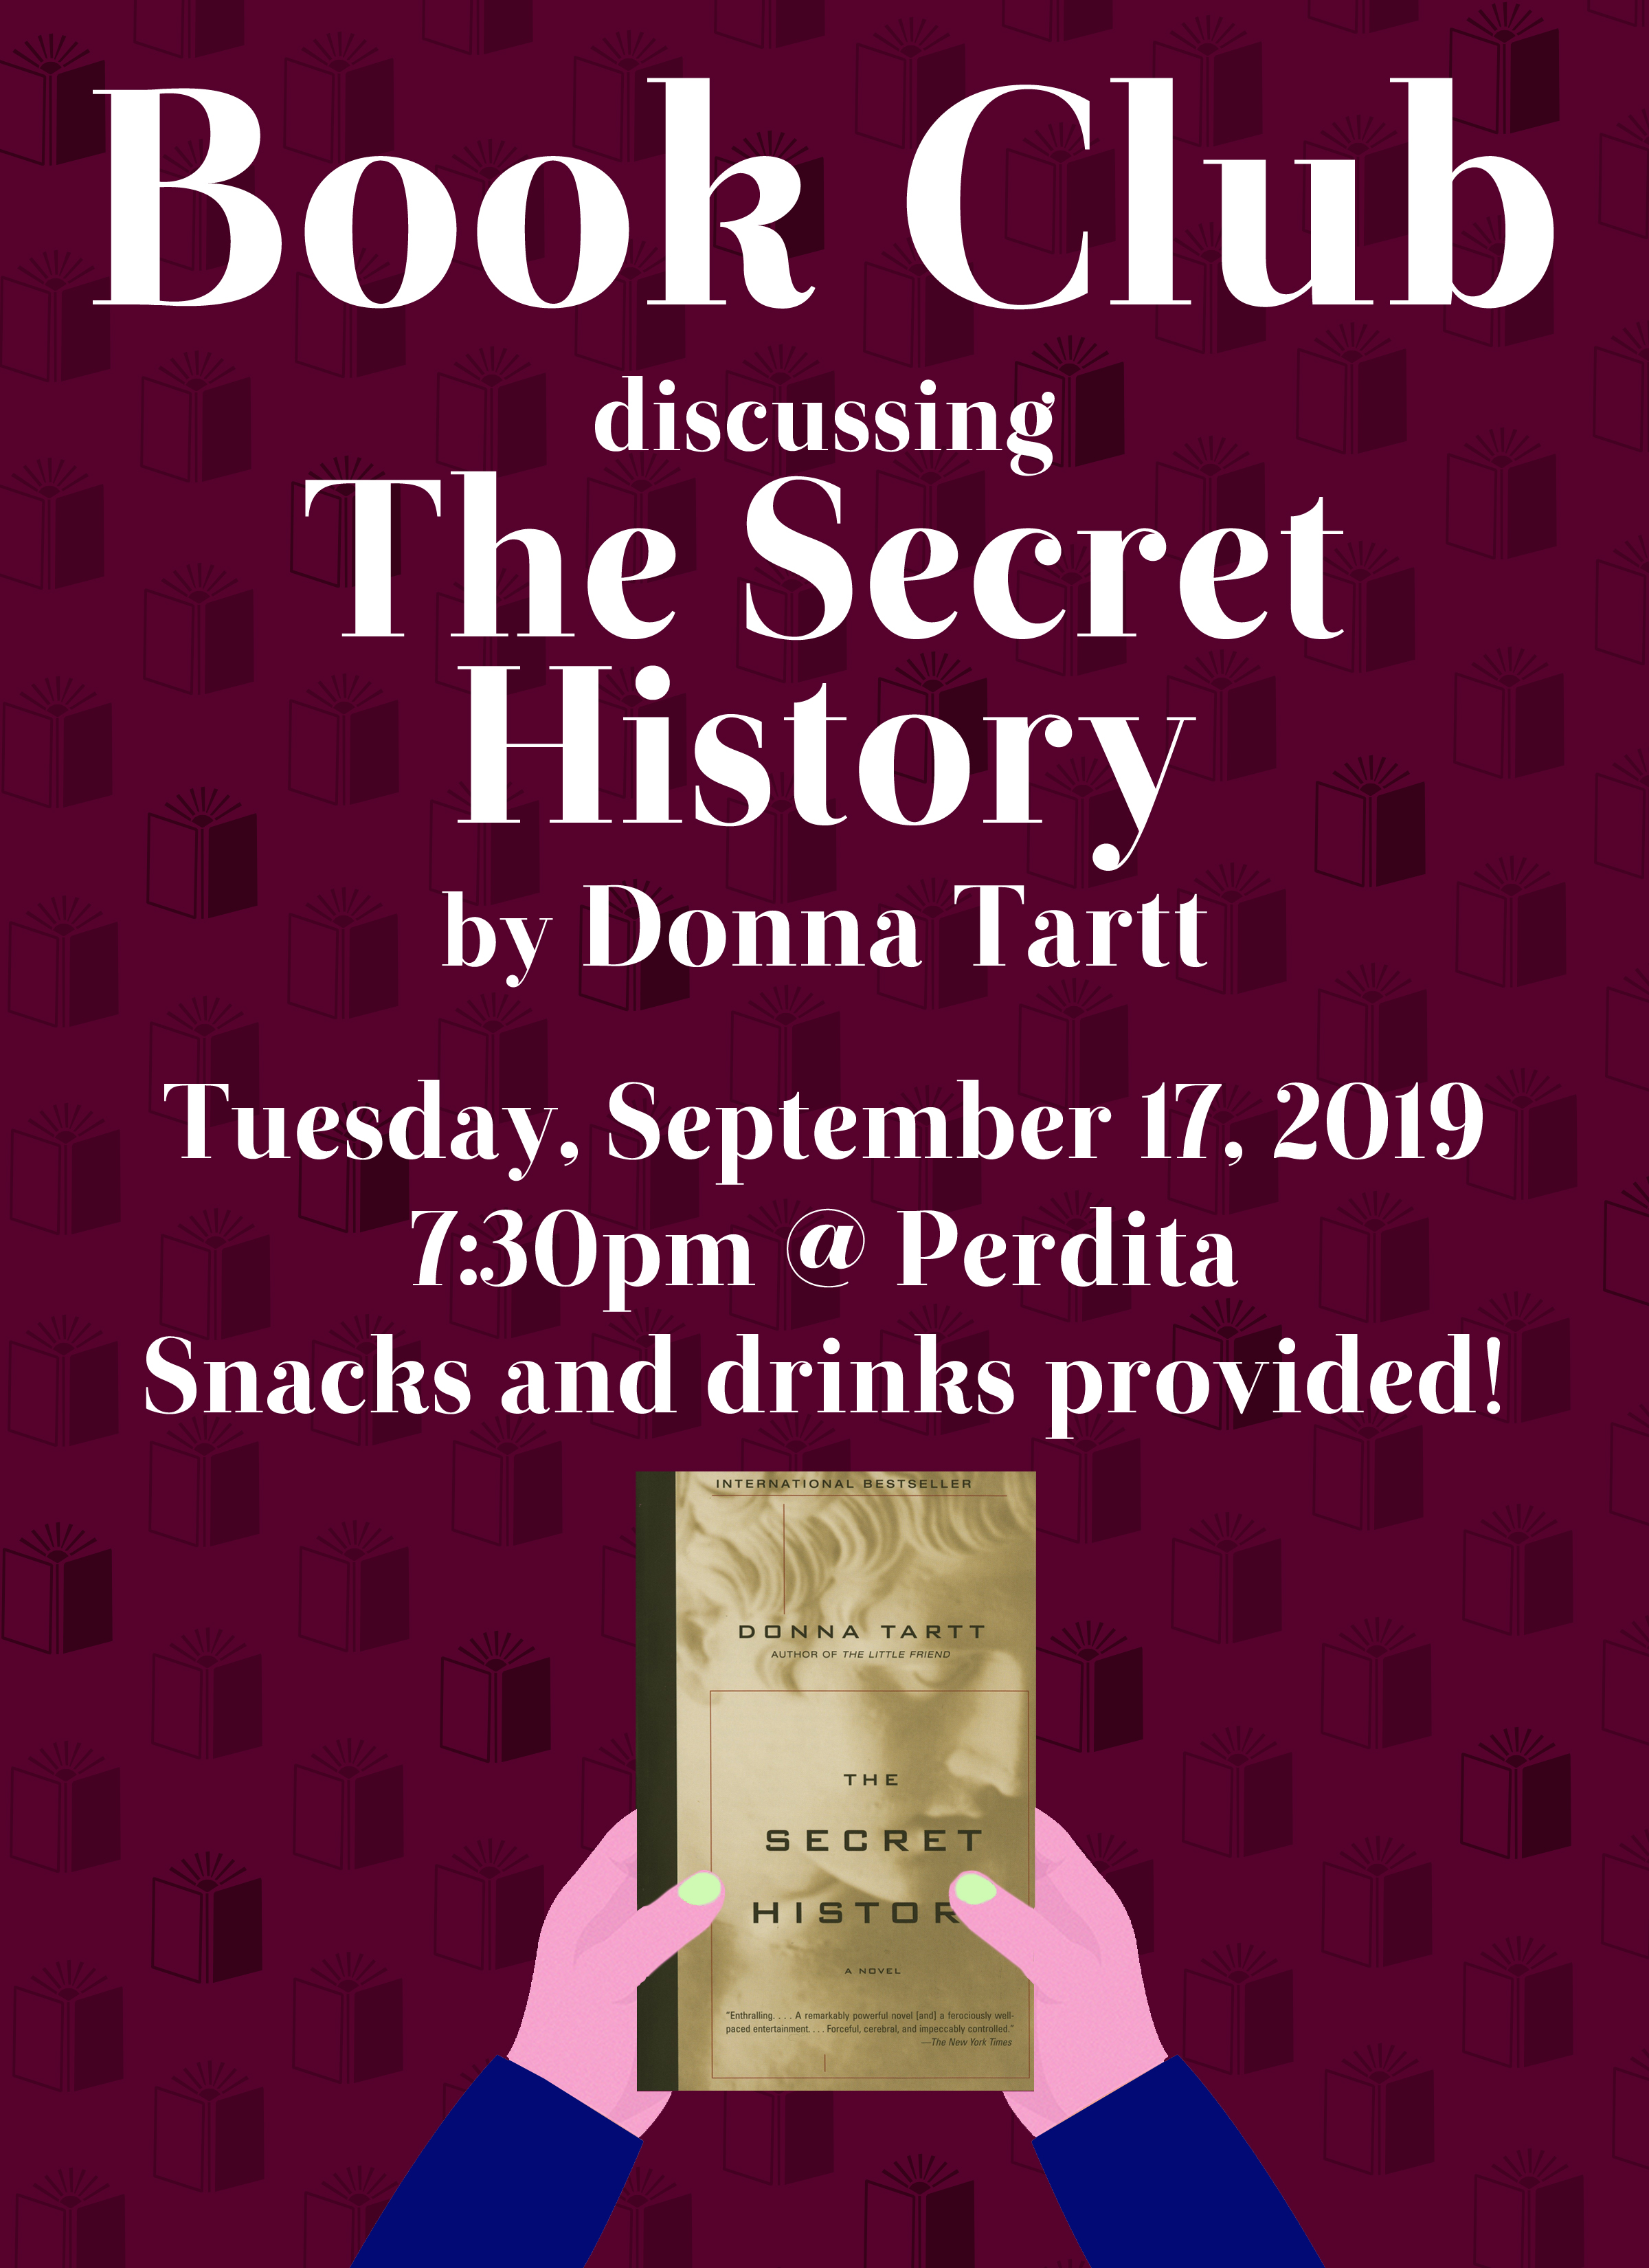 book club invite perdita the secret history september 2019.jpg